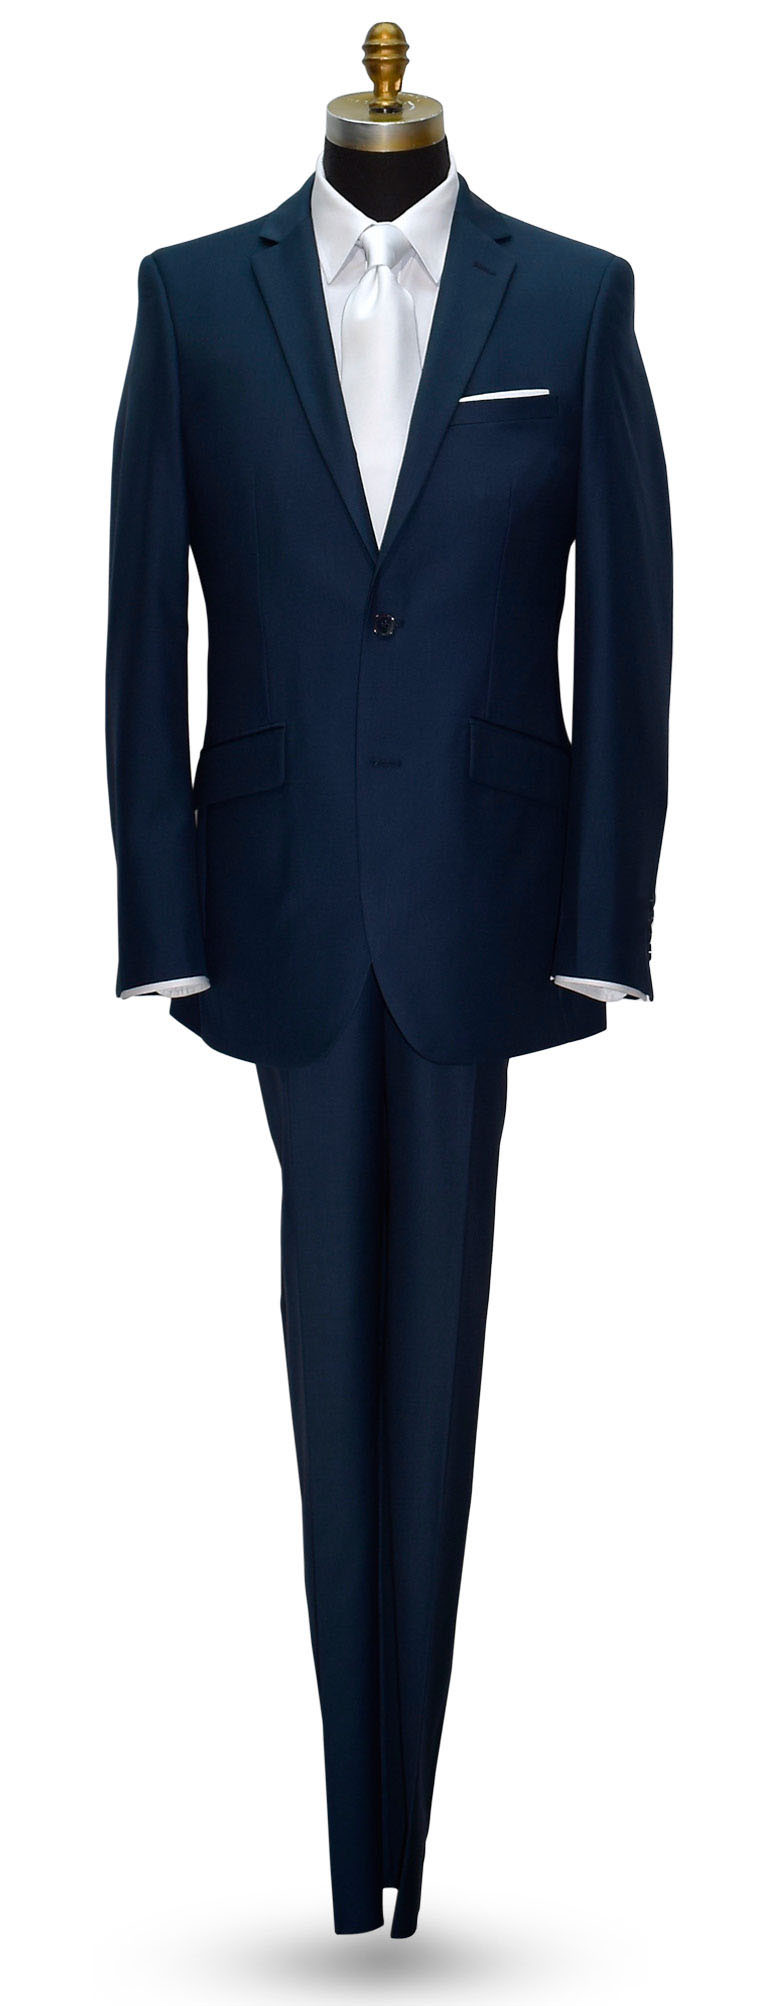 AQUA MARINE BLUE MEN'S 2 PIECE SUIT ENSEMBLE